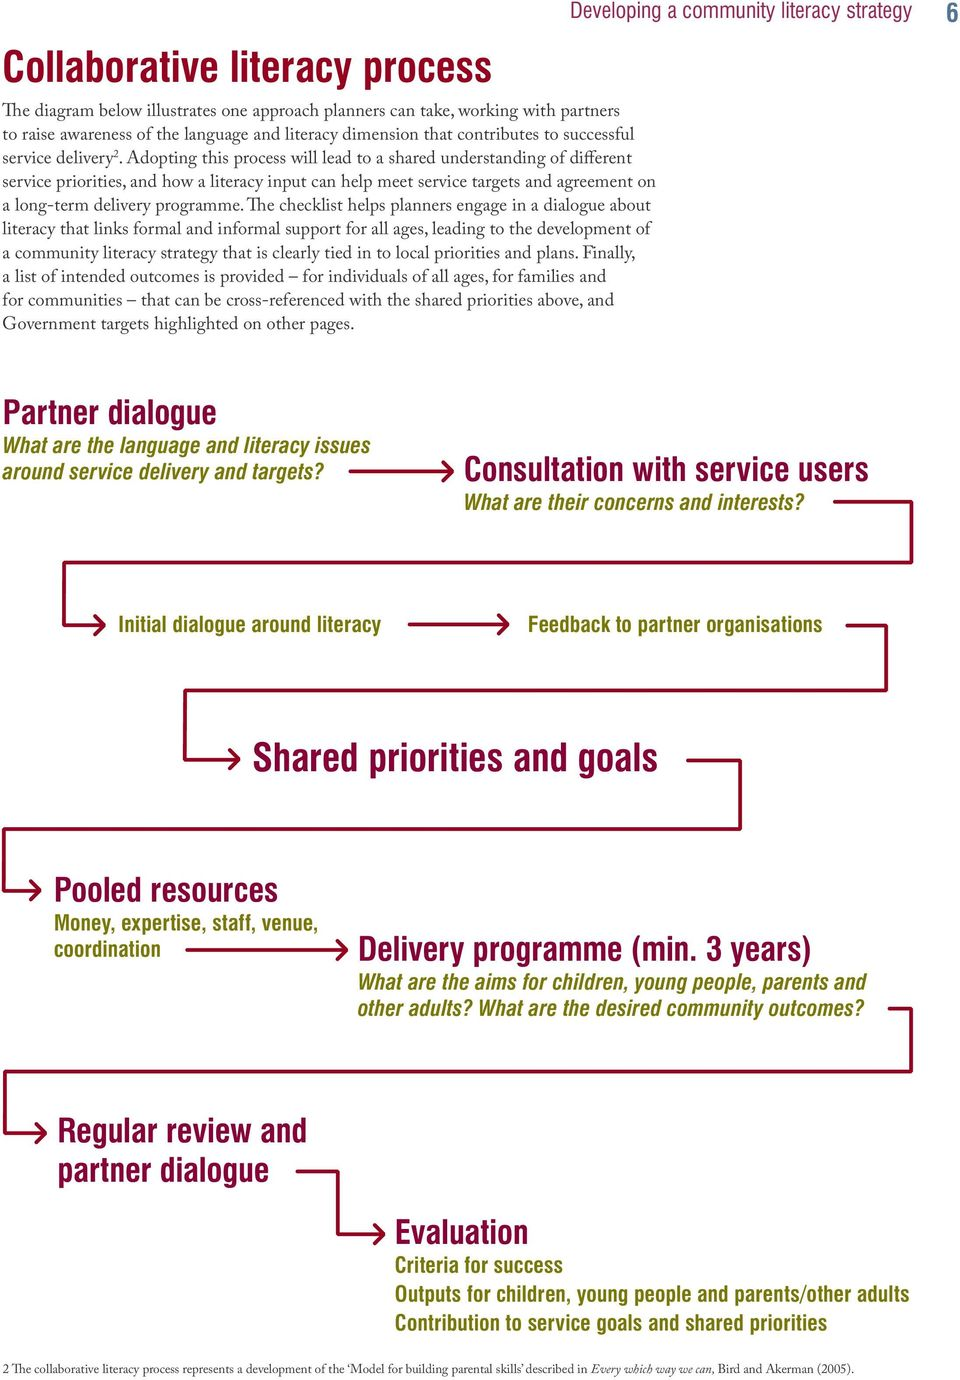 Adopting this process will lead to a shared understanding of different service priorities, and how a literacy input can help meet service targets and agreement on a long-term delivery programme.